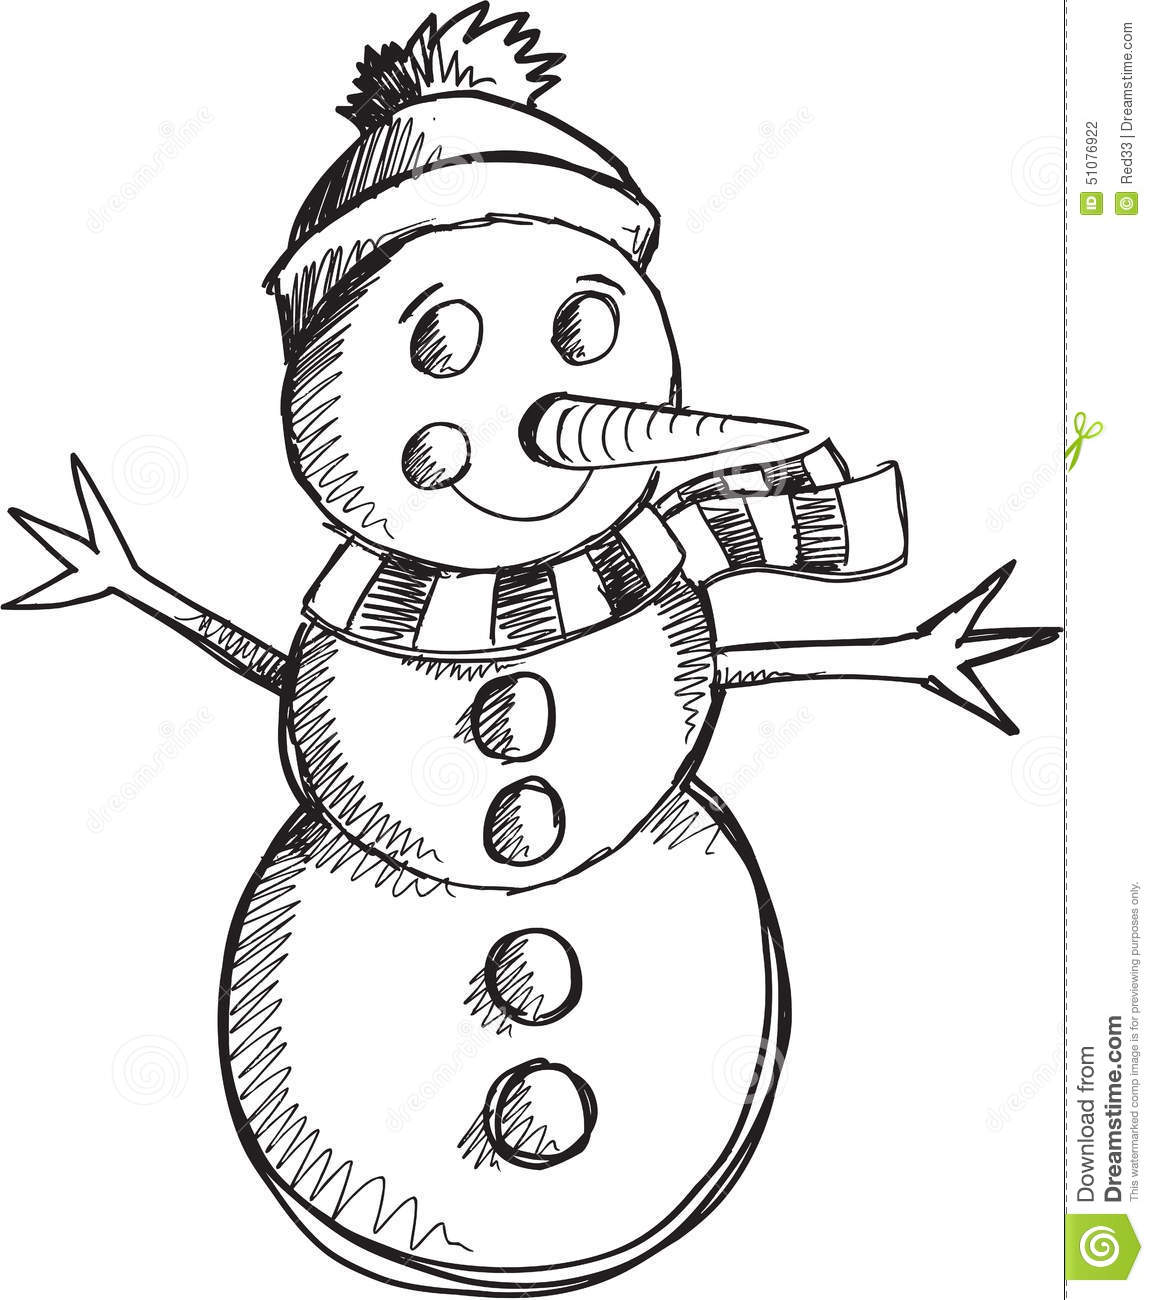 Doodle Snowman Vector Stock Vector. Image Of Doodle, Cold